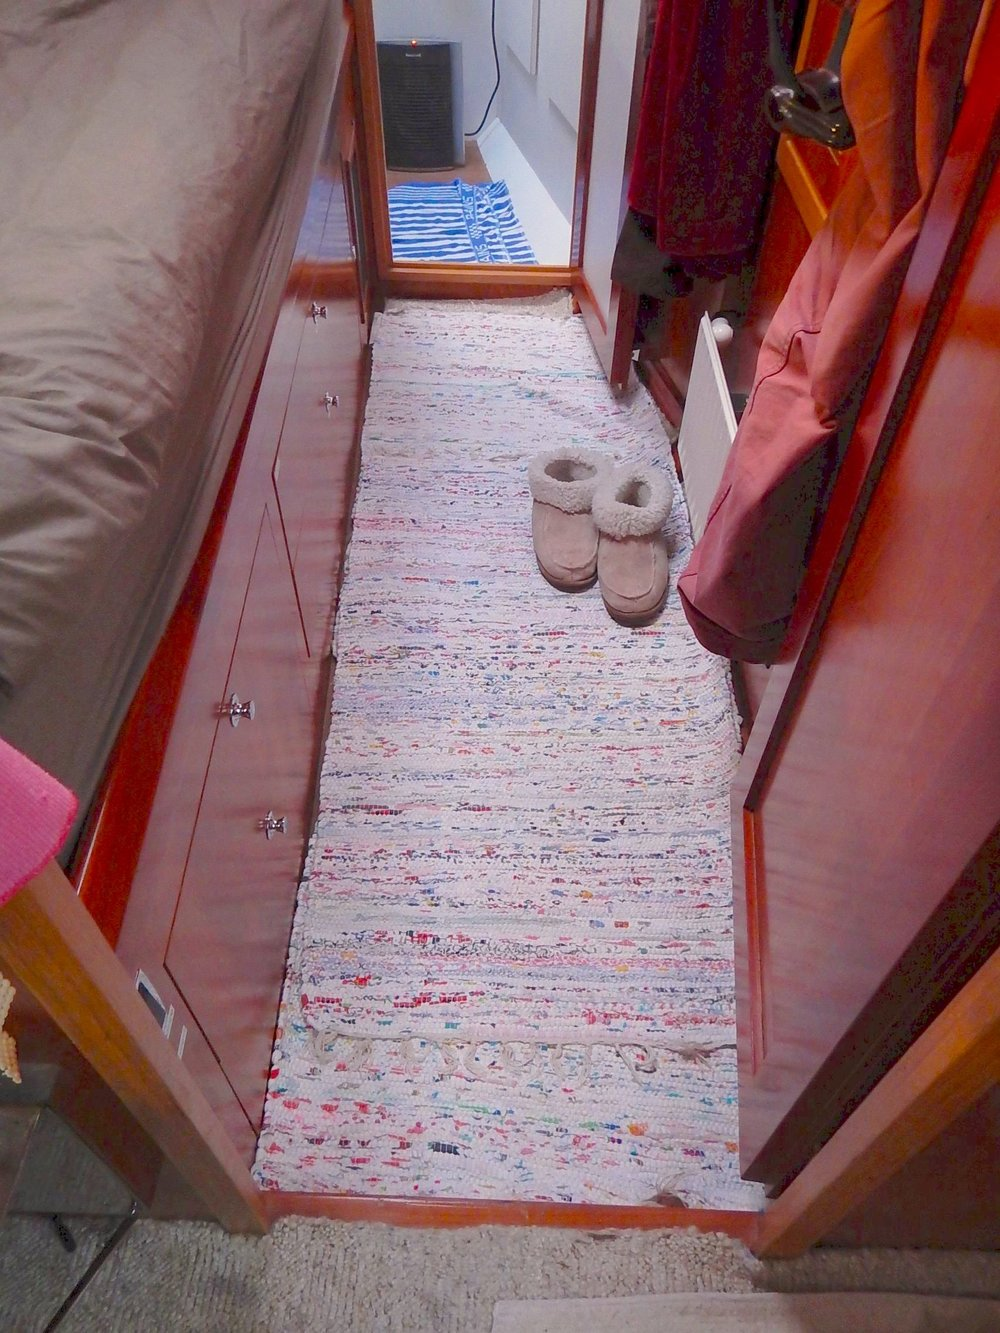 Nice woven rugs onboard. Photo by François & Valérie